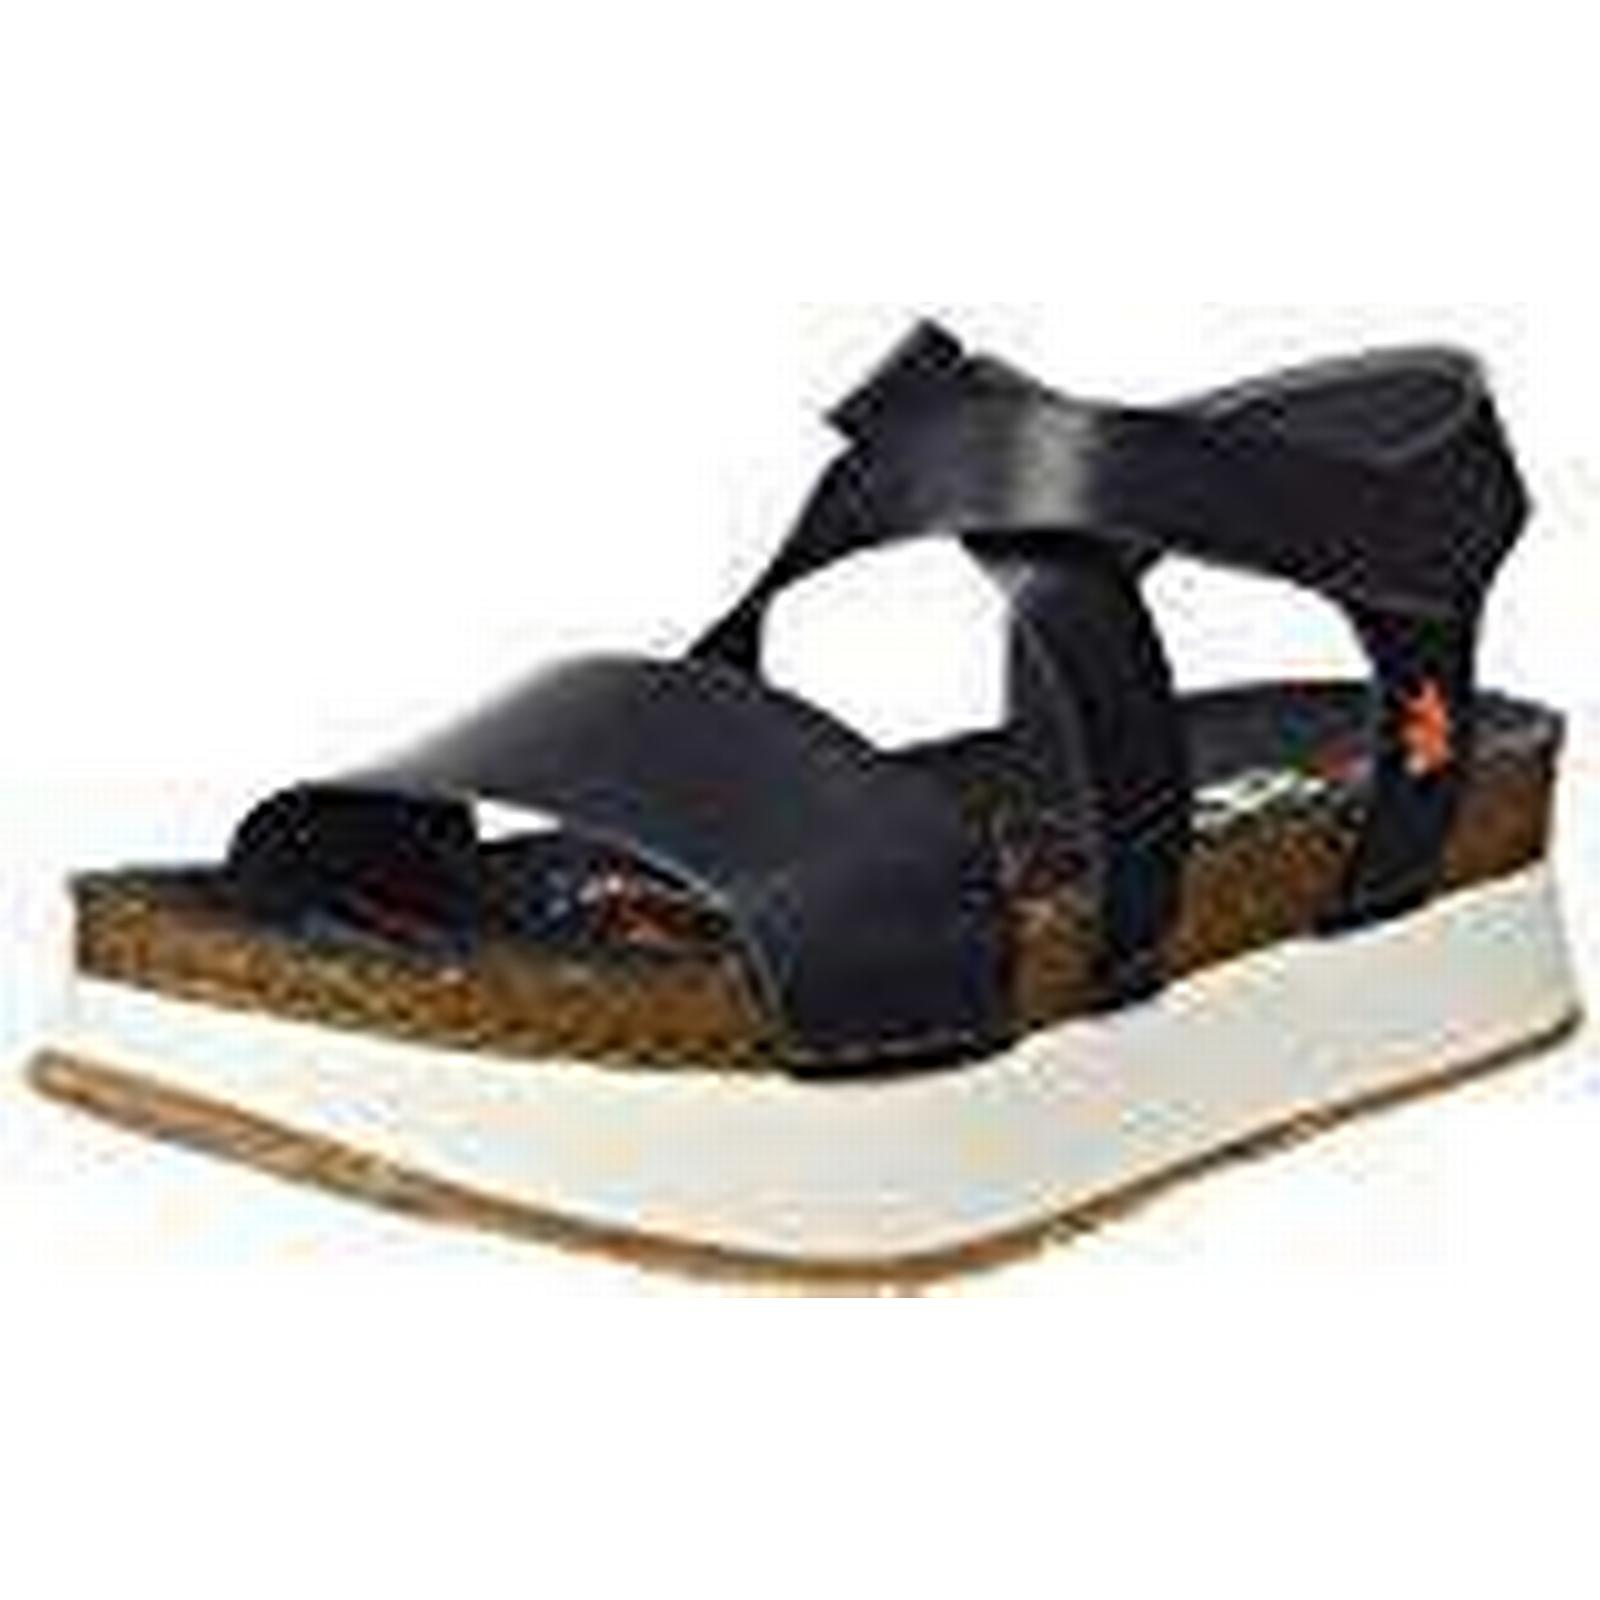 Art 0587 Mojave Mykonos, Black, Women's Open Toe Sandals, Black, Mykonos, 3 UK (36 EU) 3d561f